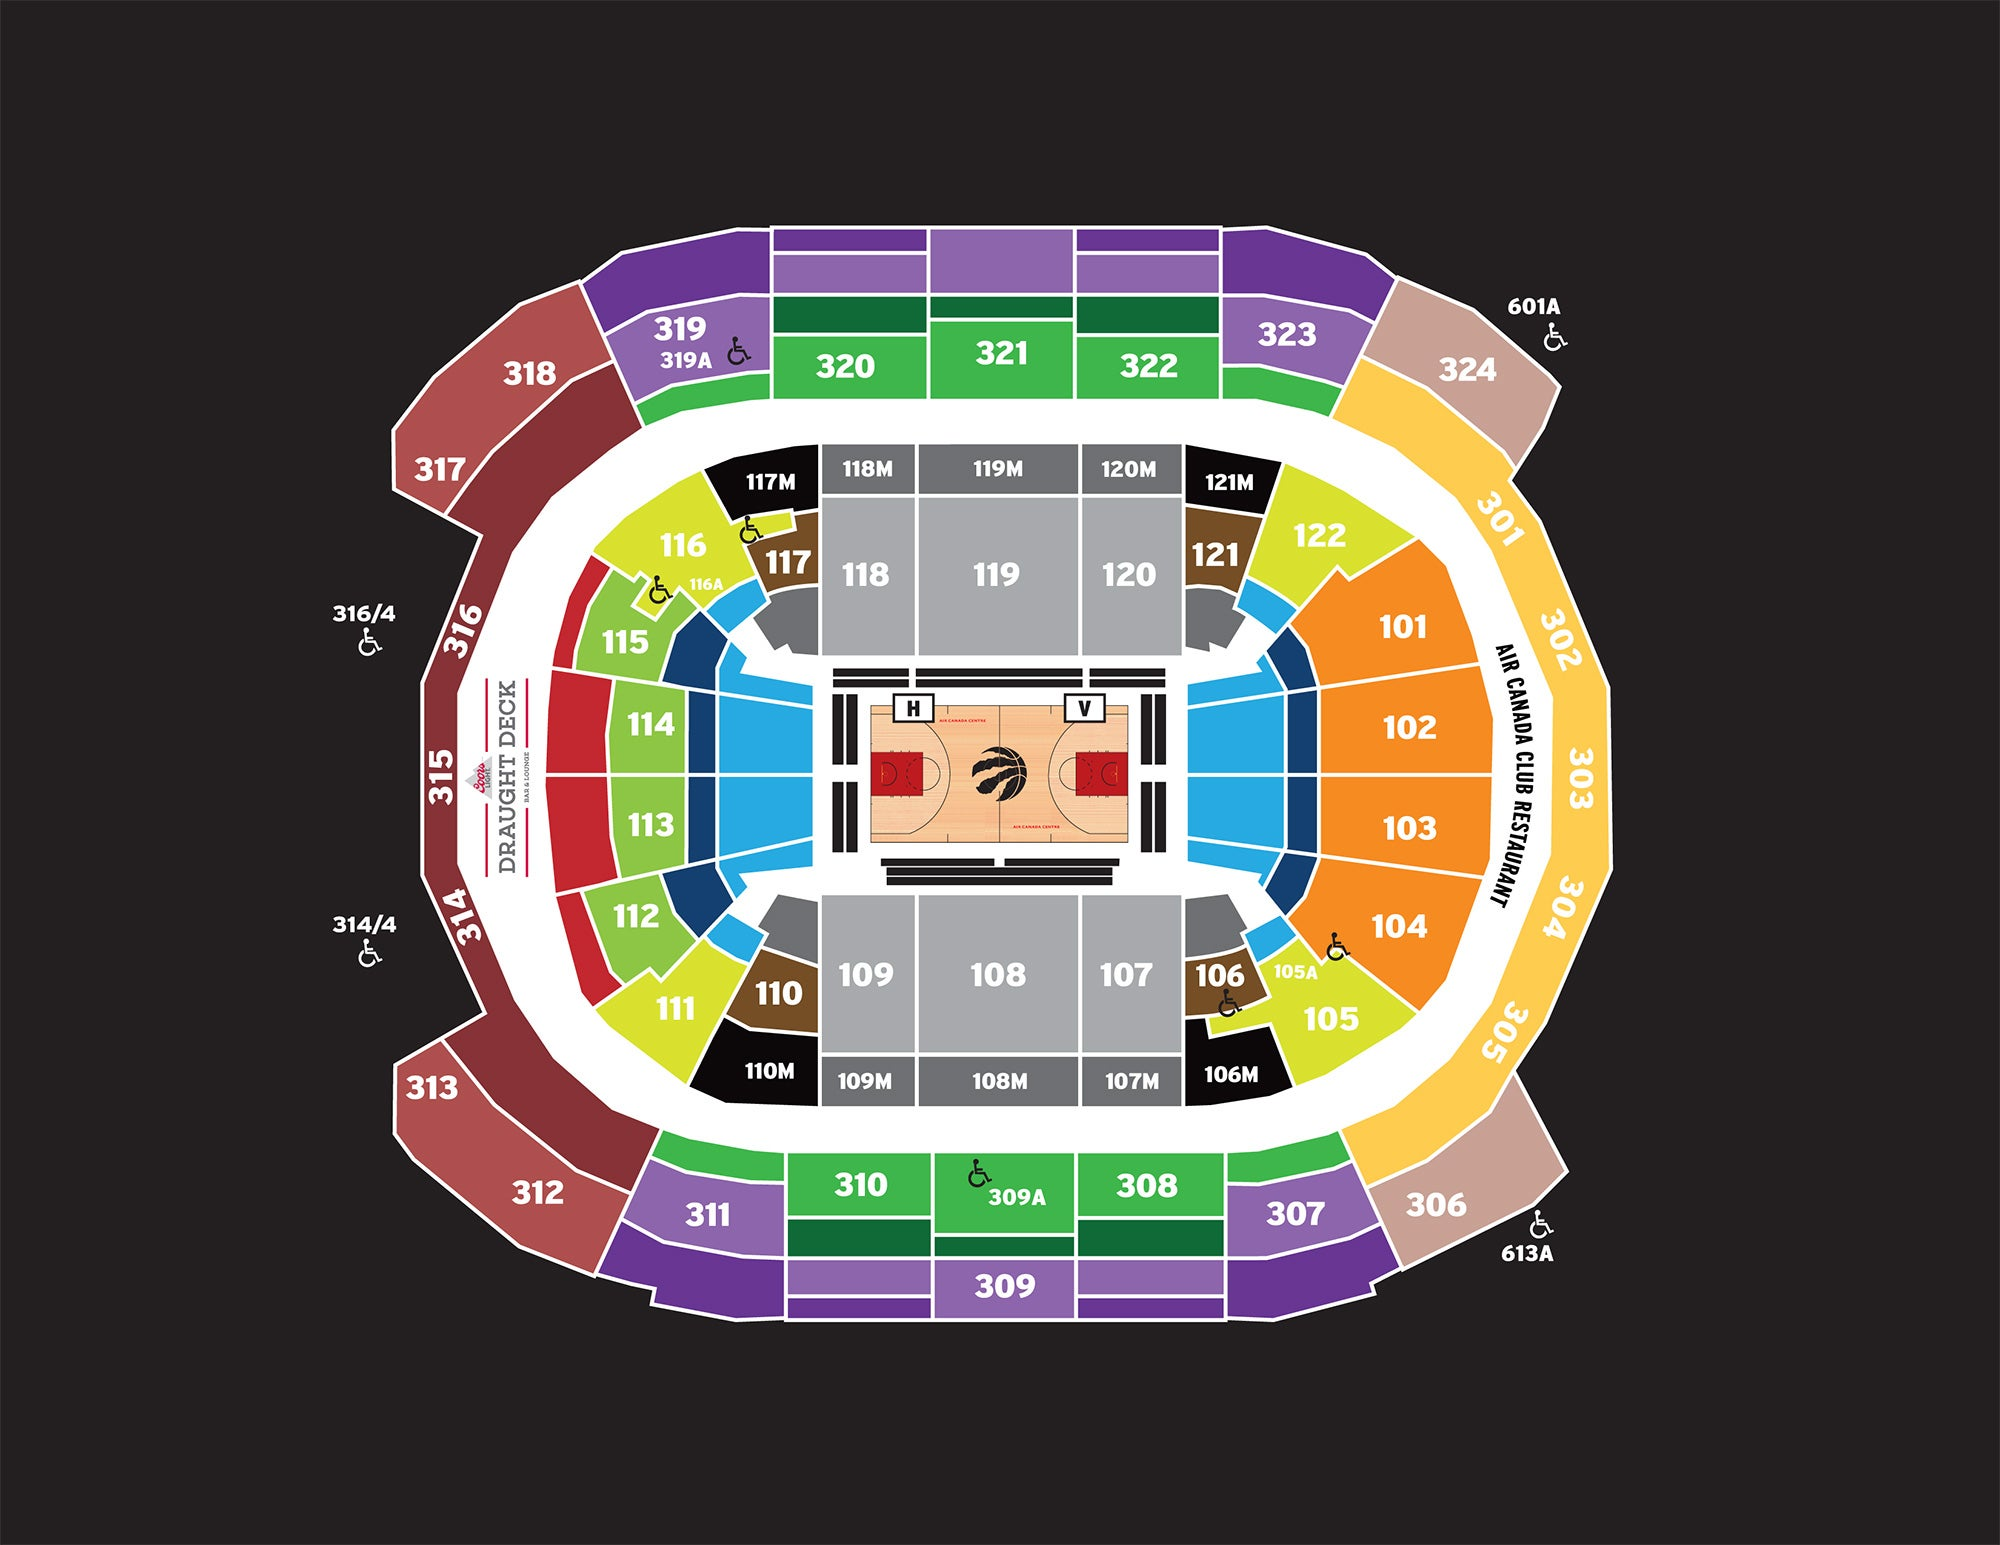 Toronto Raptors Seating Map 2016-17.jpg